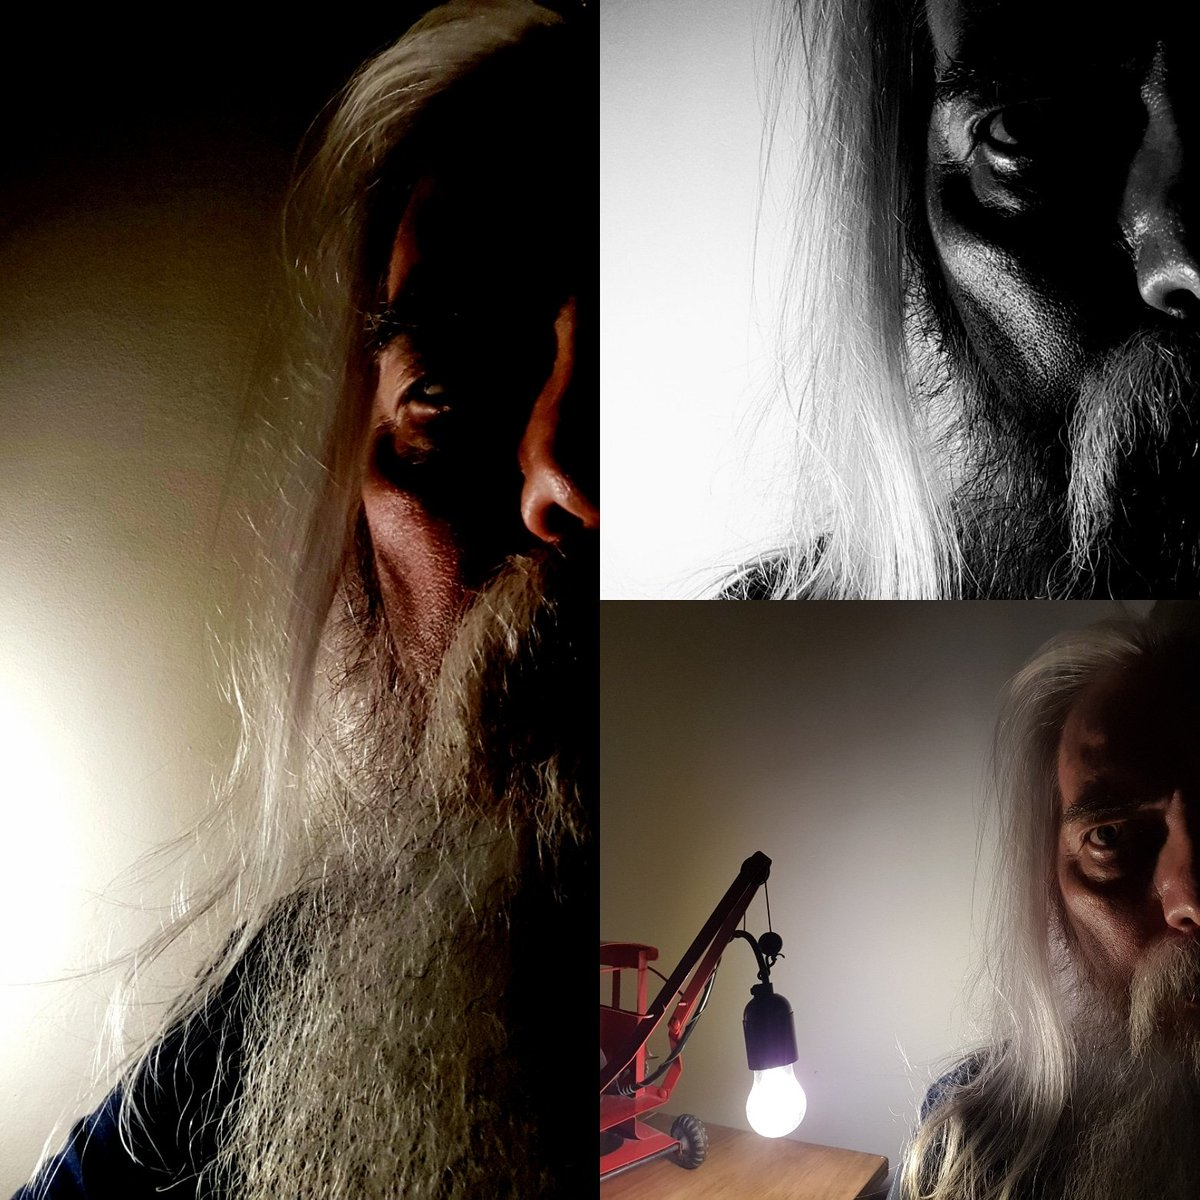 #greyhair #greybeard #silverhair #silverbeard #silverfox #beard  #beardsofinstagram #beardedmen #beardfashion #beardforlife #beardlove #beardgang  #beardpower #beardnation #beardking #longhair #longhairedmen #longhairedmenofinstagram #longhairedguys #longhaired #bearded  #stylepic.twitter.com/SepJ2U4GvG